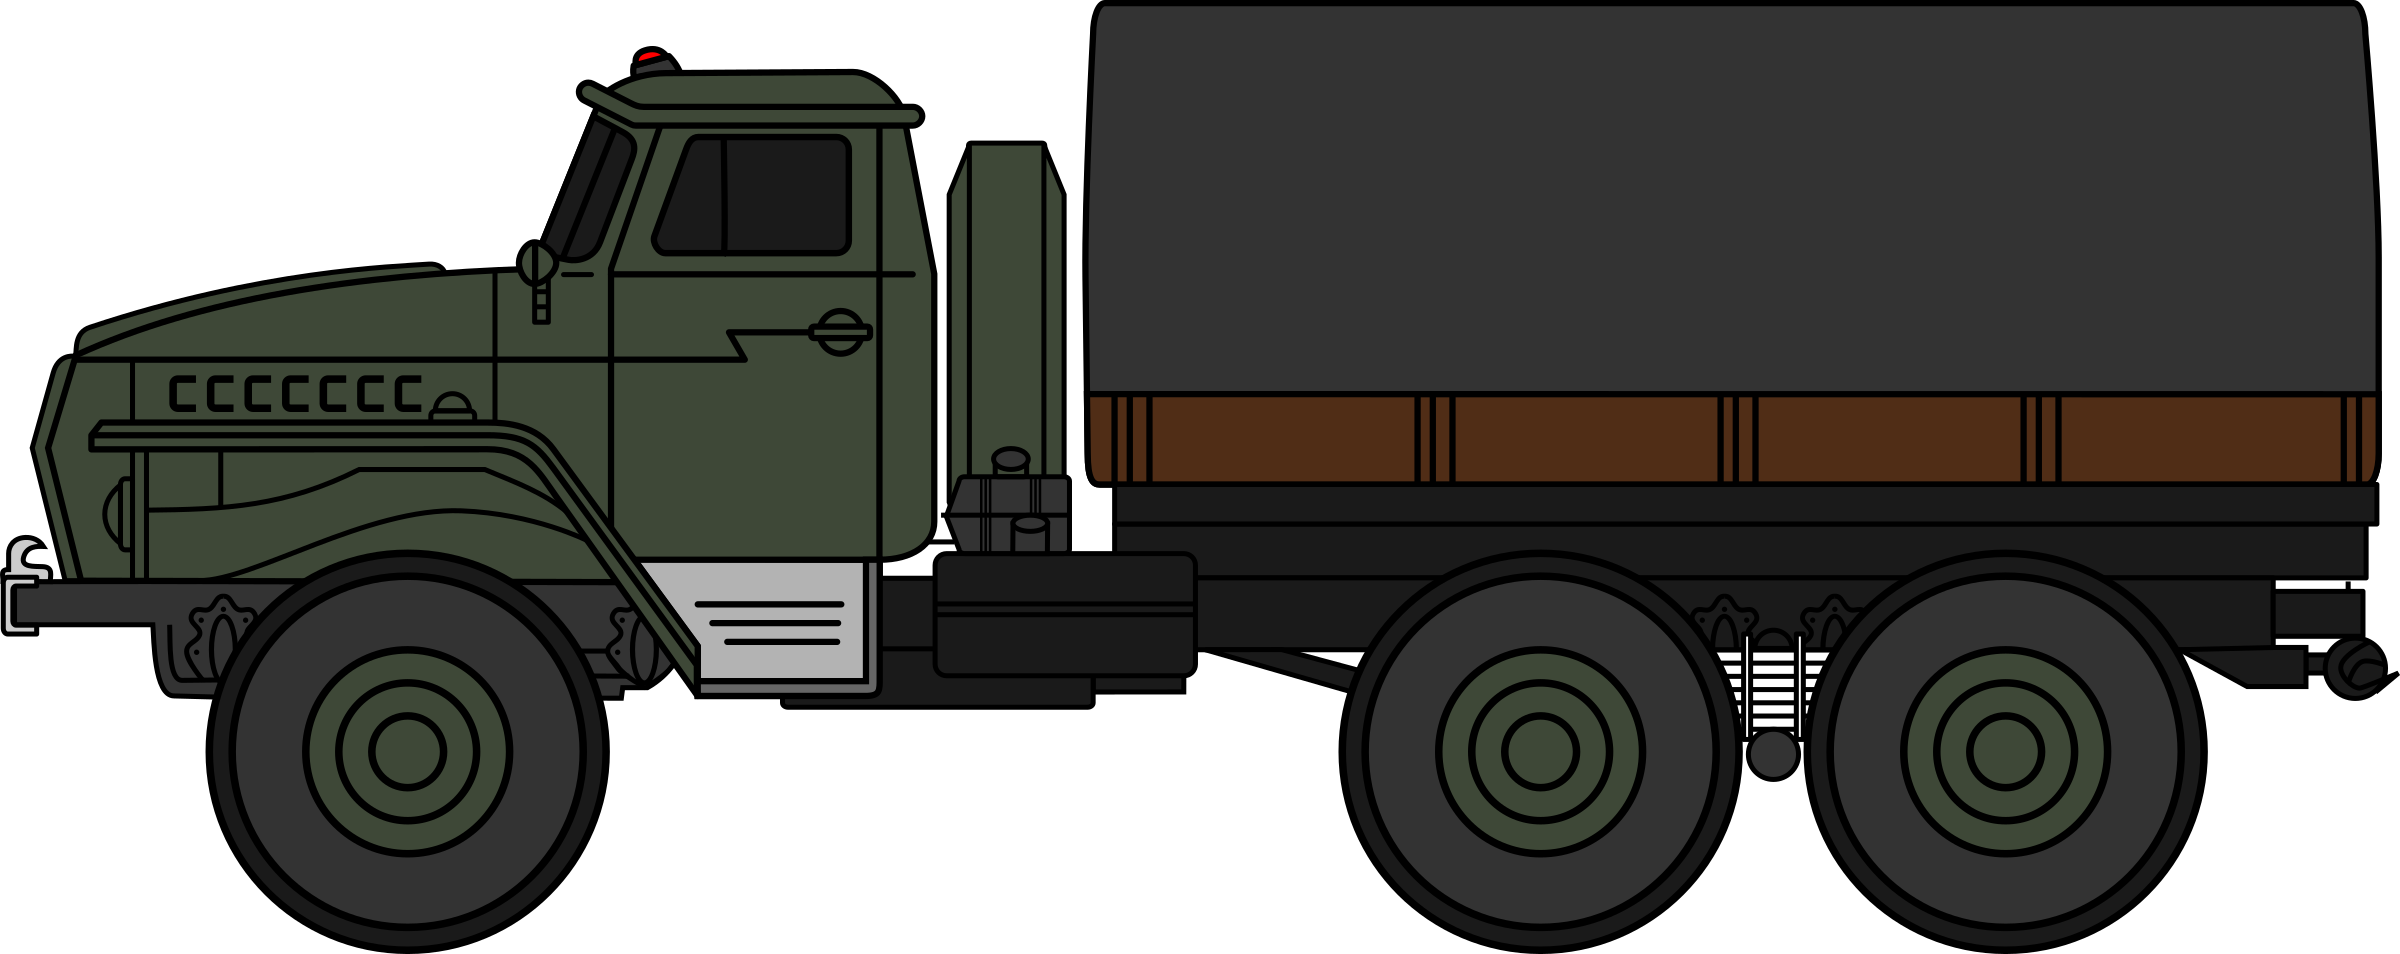 Ural-4320 military truck (coloured) by derkommander0916